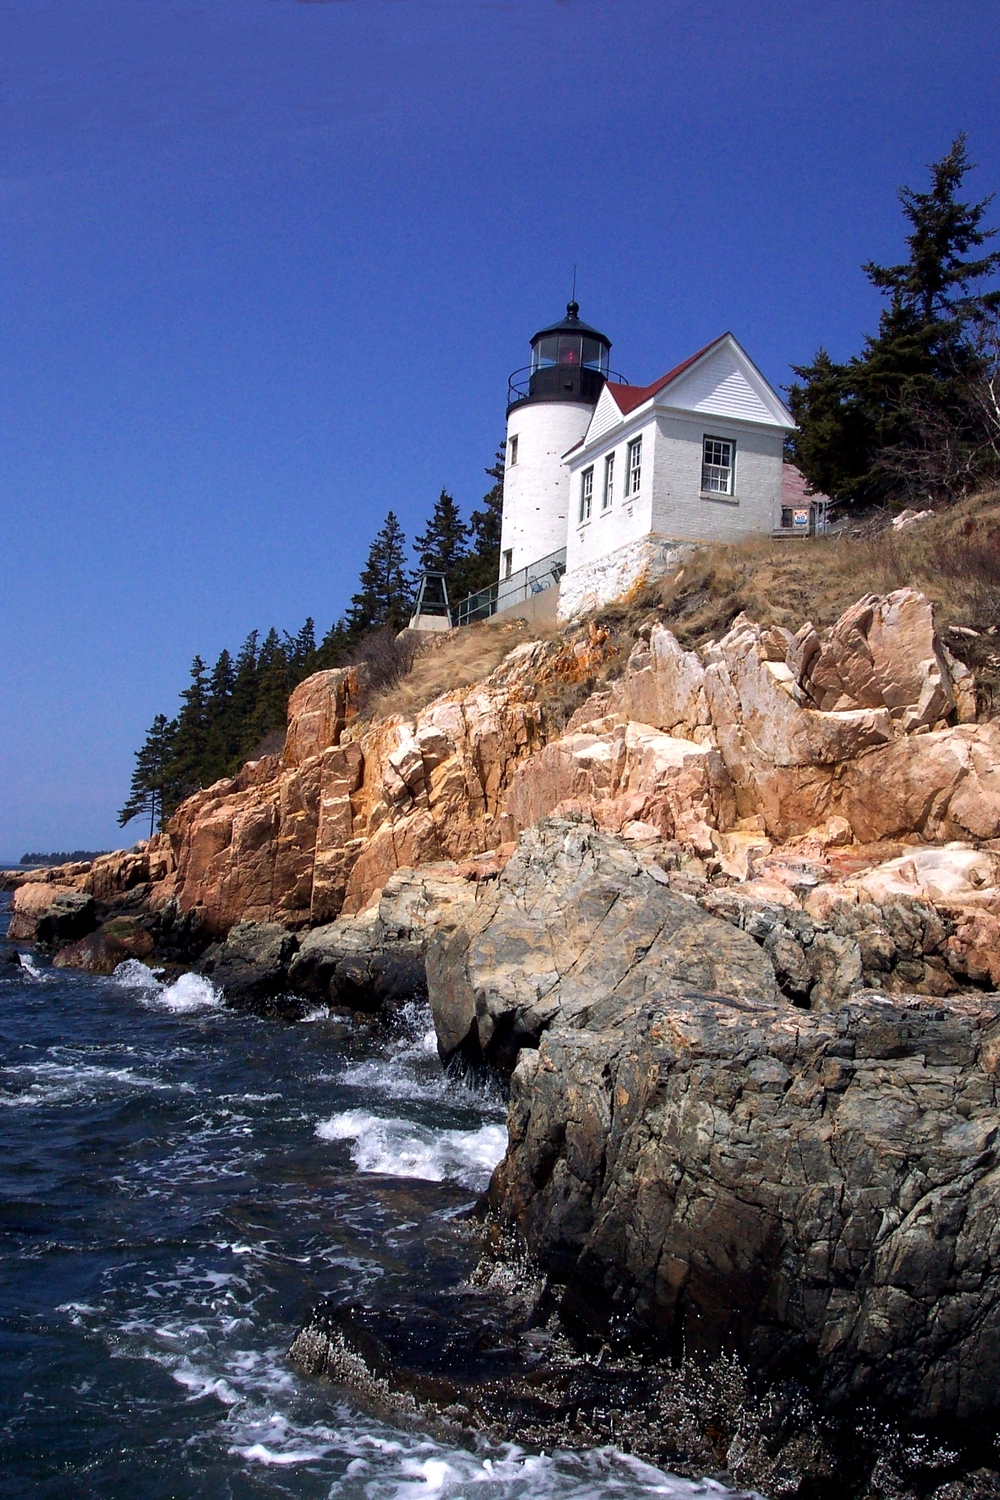 Bass_Harbor_Head_Lighthouse,_NOAA,_2003.jpg